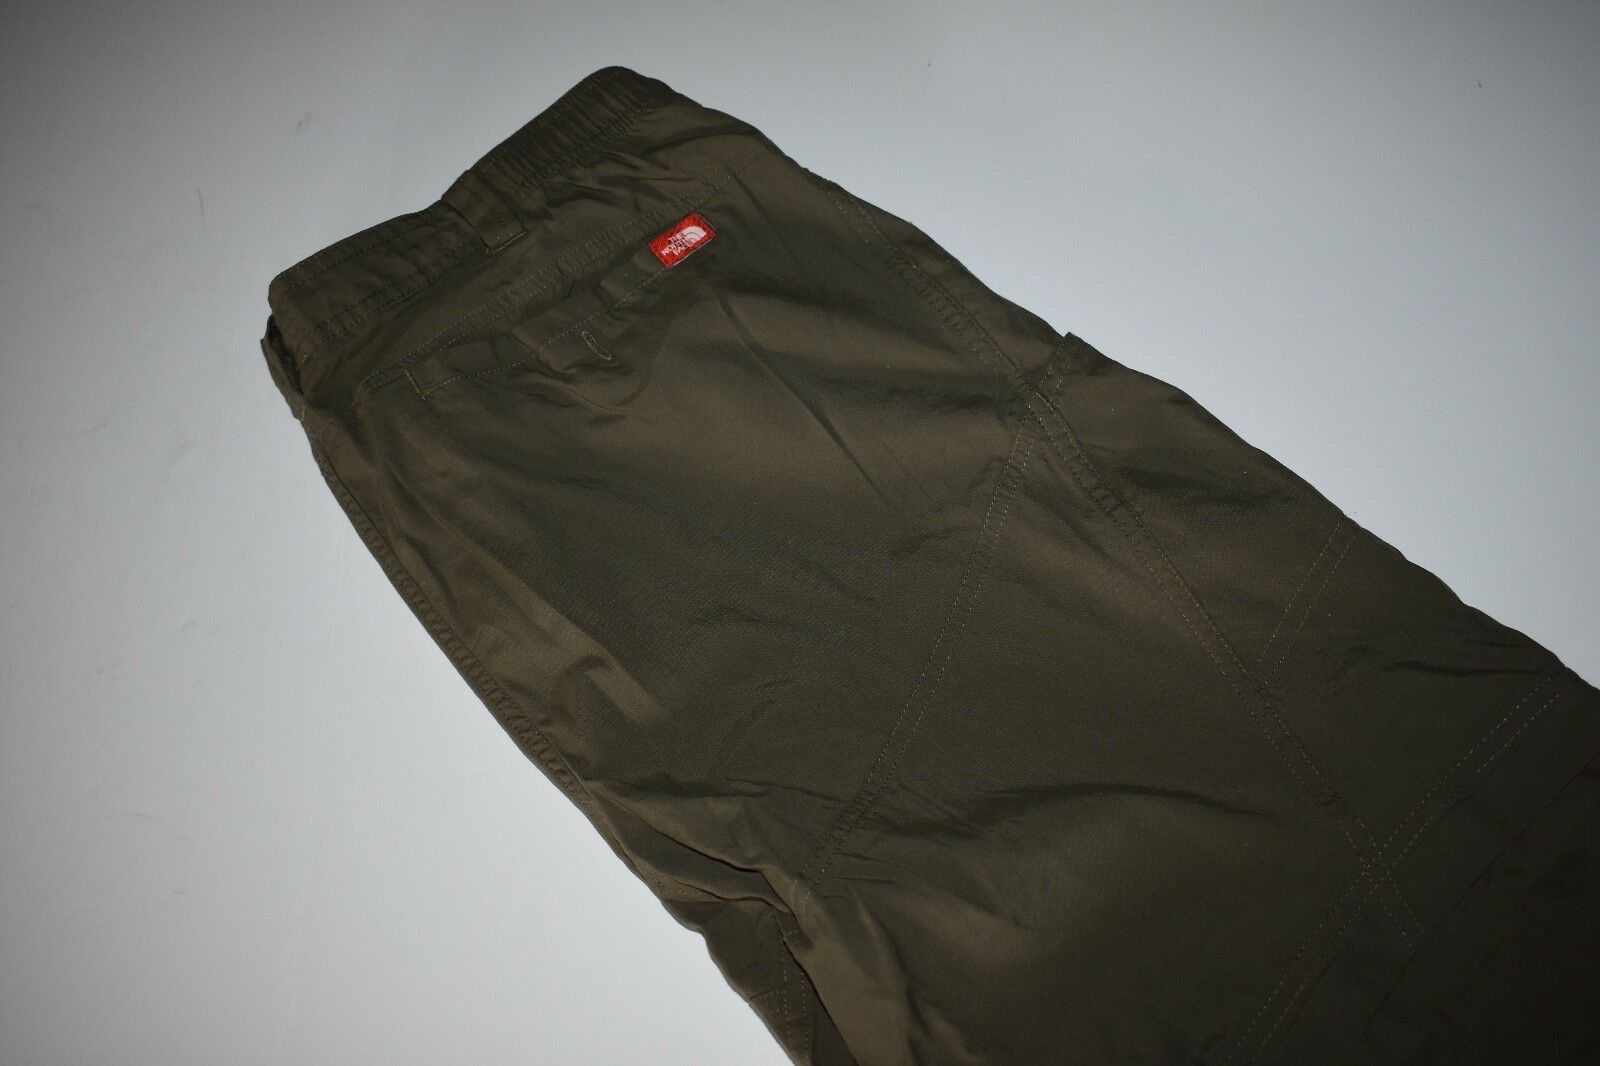 THE NORTH FACE Congreenible Pants Nylon Hiking Cargo MENS L Zip Off Shorts